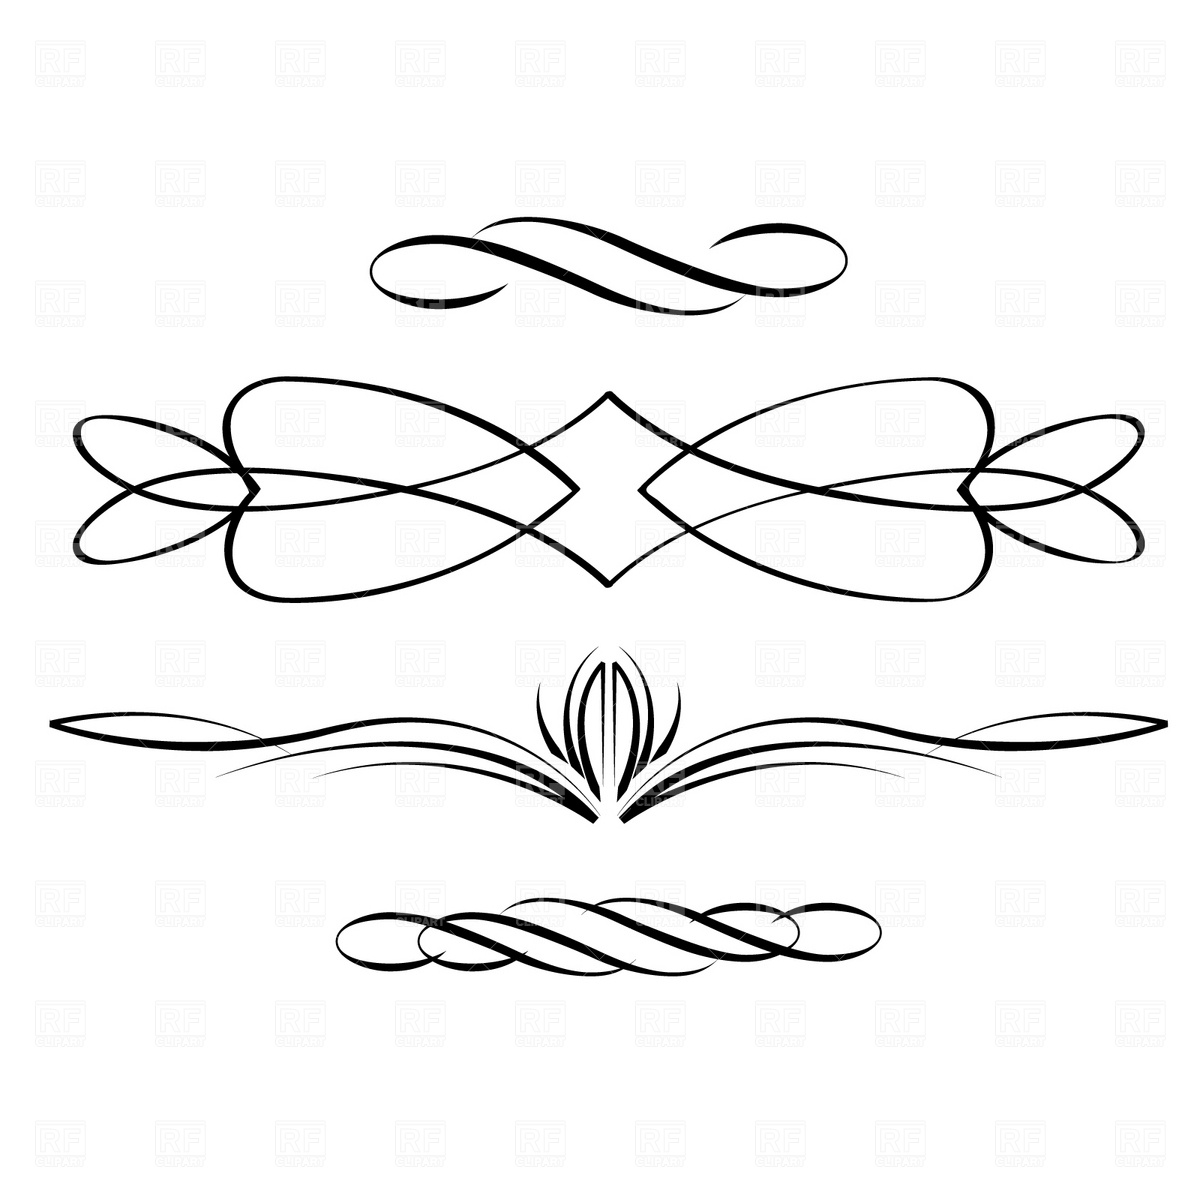 Calligraphy clipart #7, Download drawings